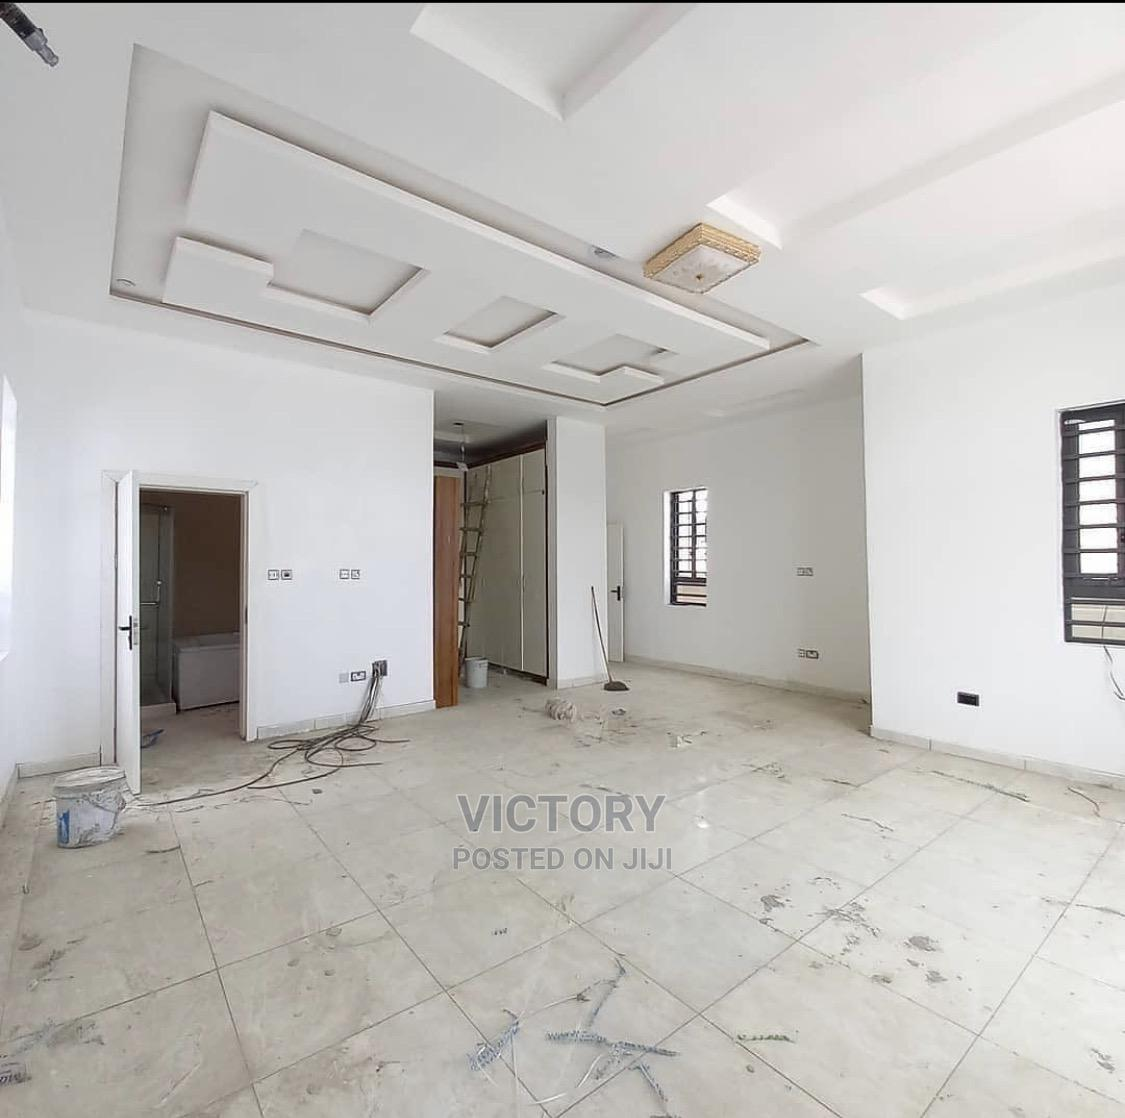 5 Bedroom Duplex With 1 BQ, Title Governor'S Consent | Houses & Apartments For Sale for sale in Lekki, Lagos State, Nigeria